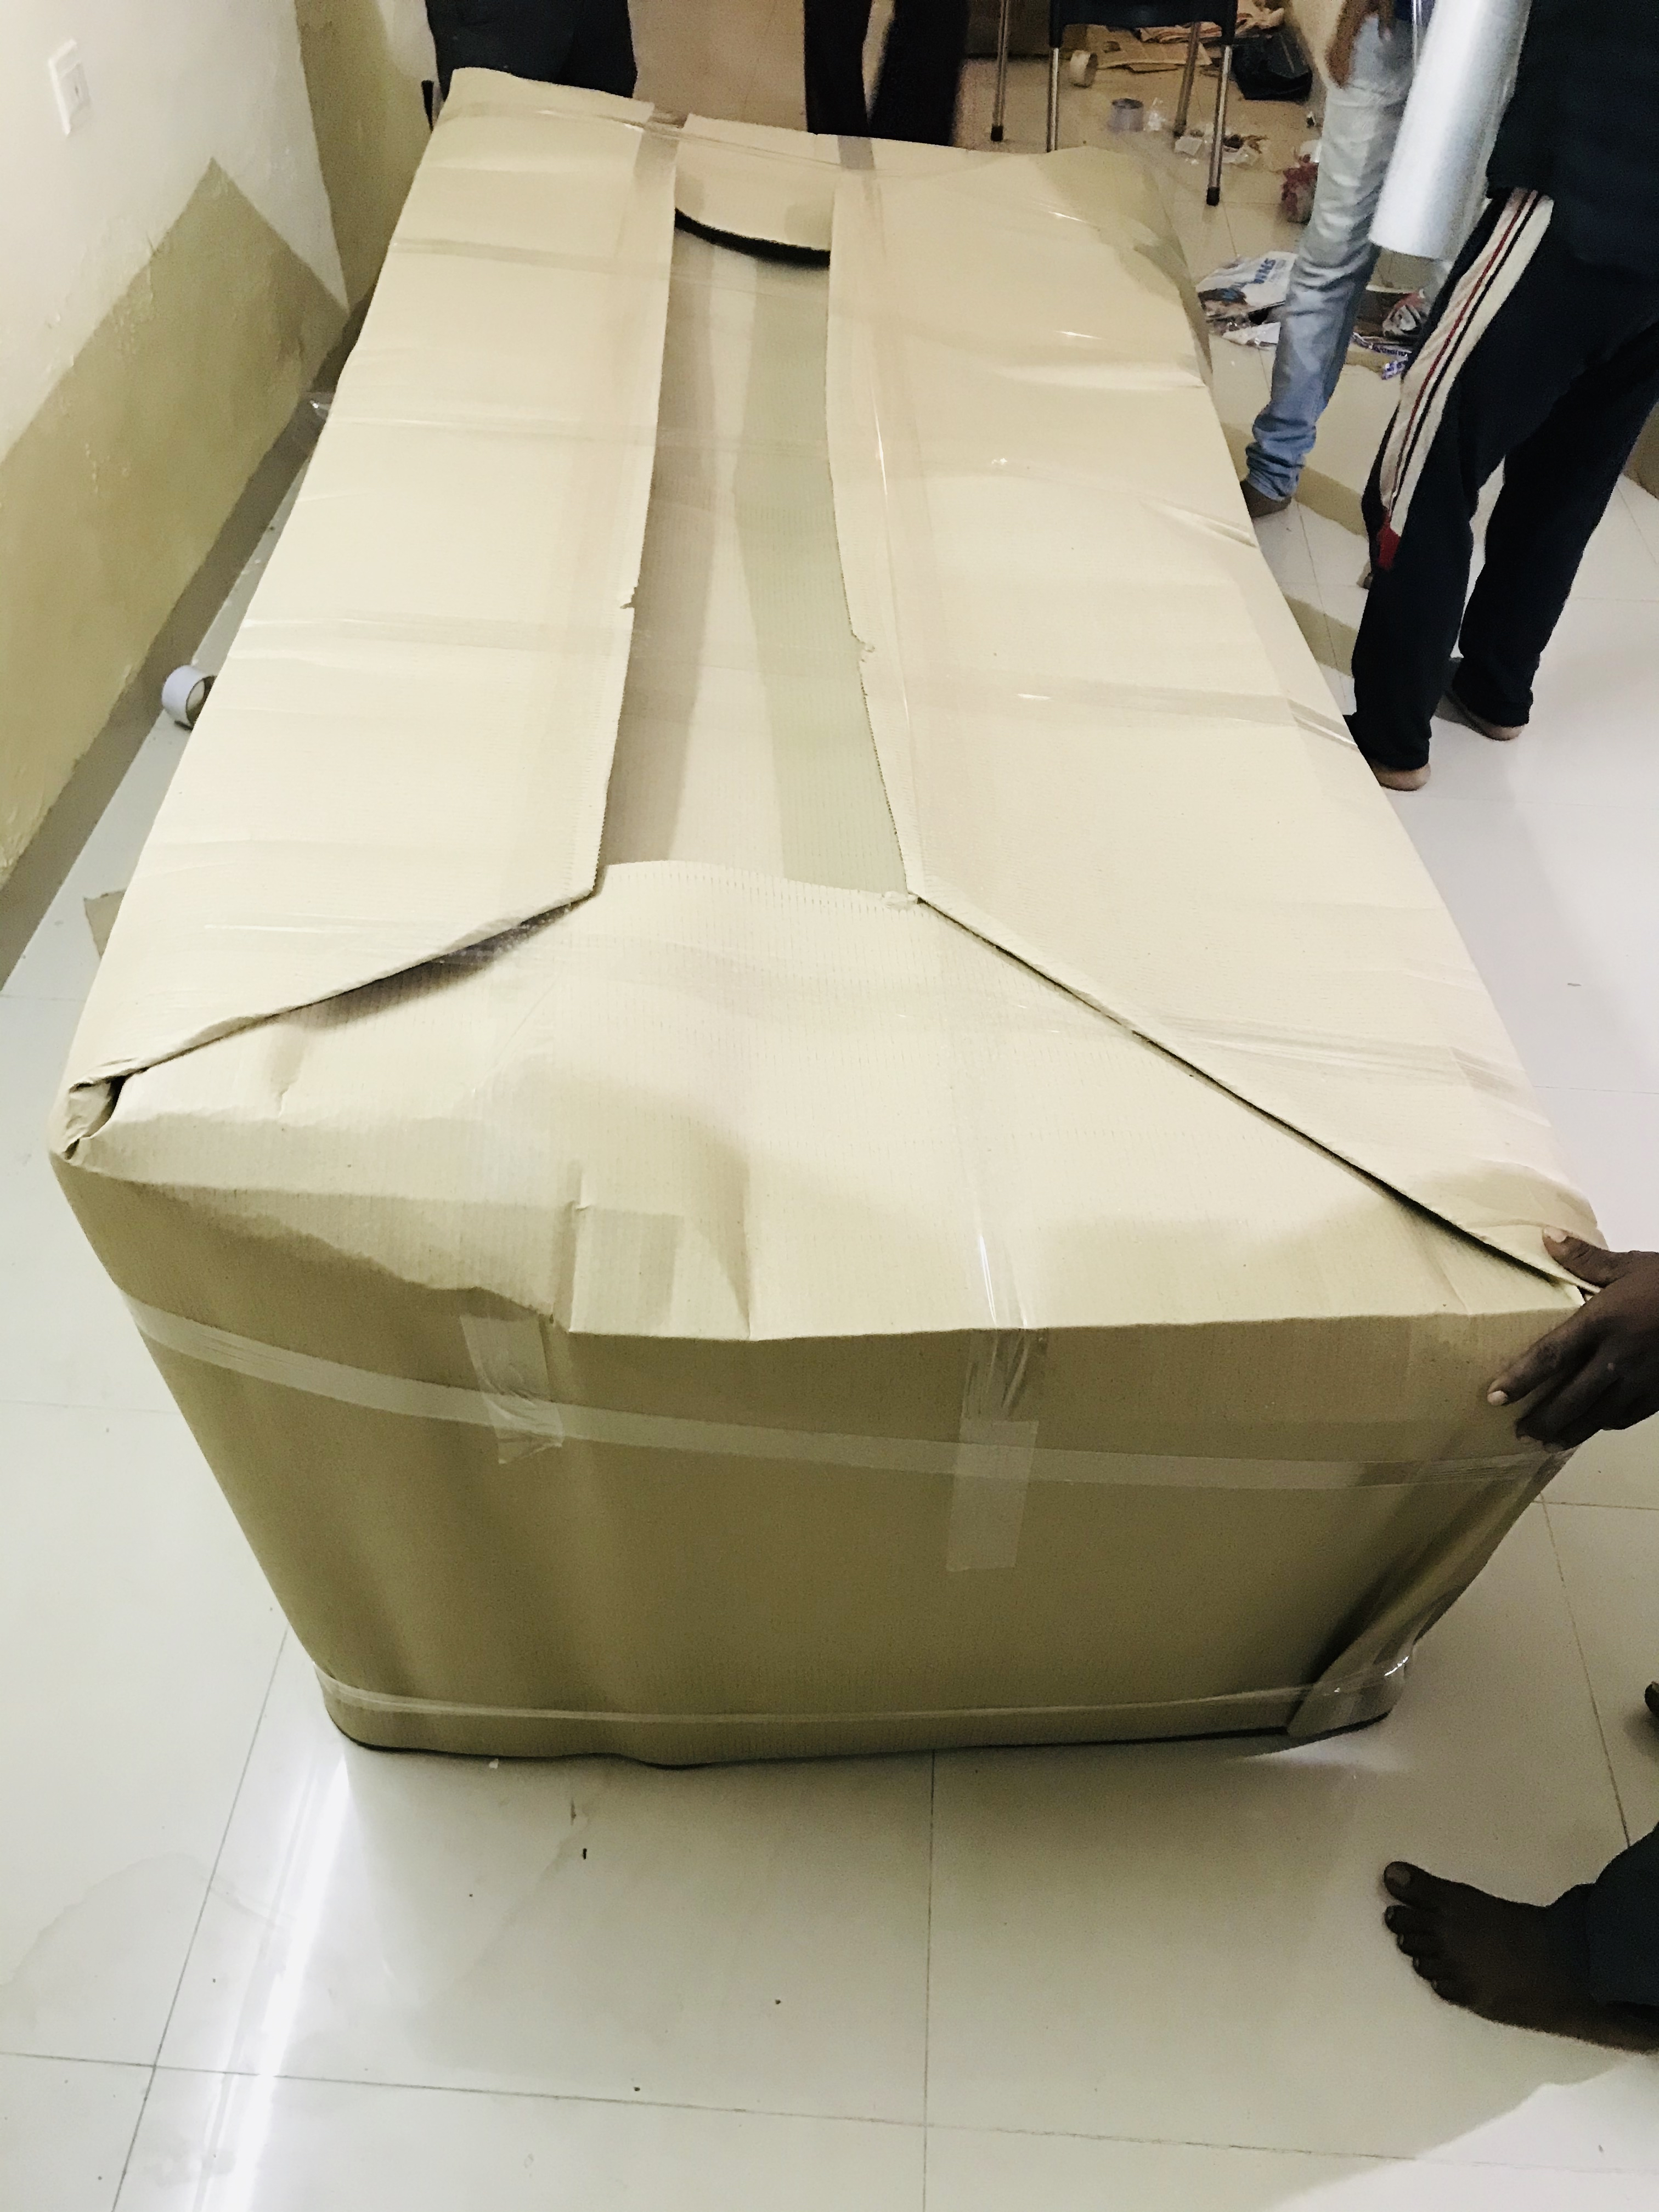 Sofa Packed With FoamSheet, Air Bubble Brown Sheet, Lamination, Tape